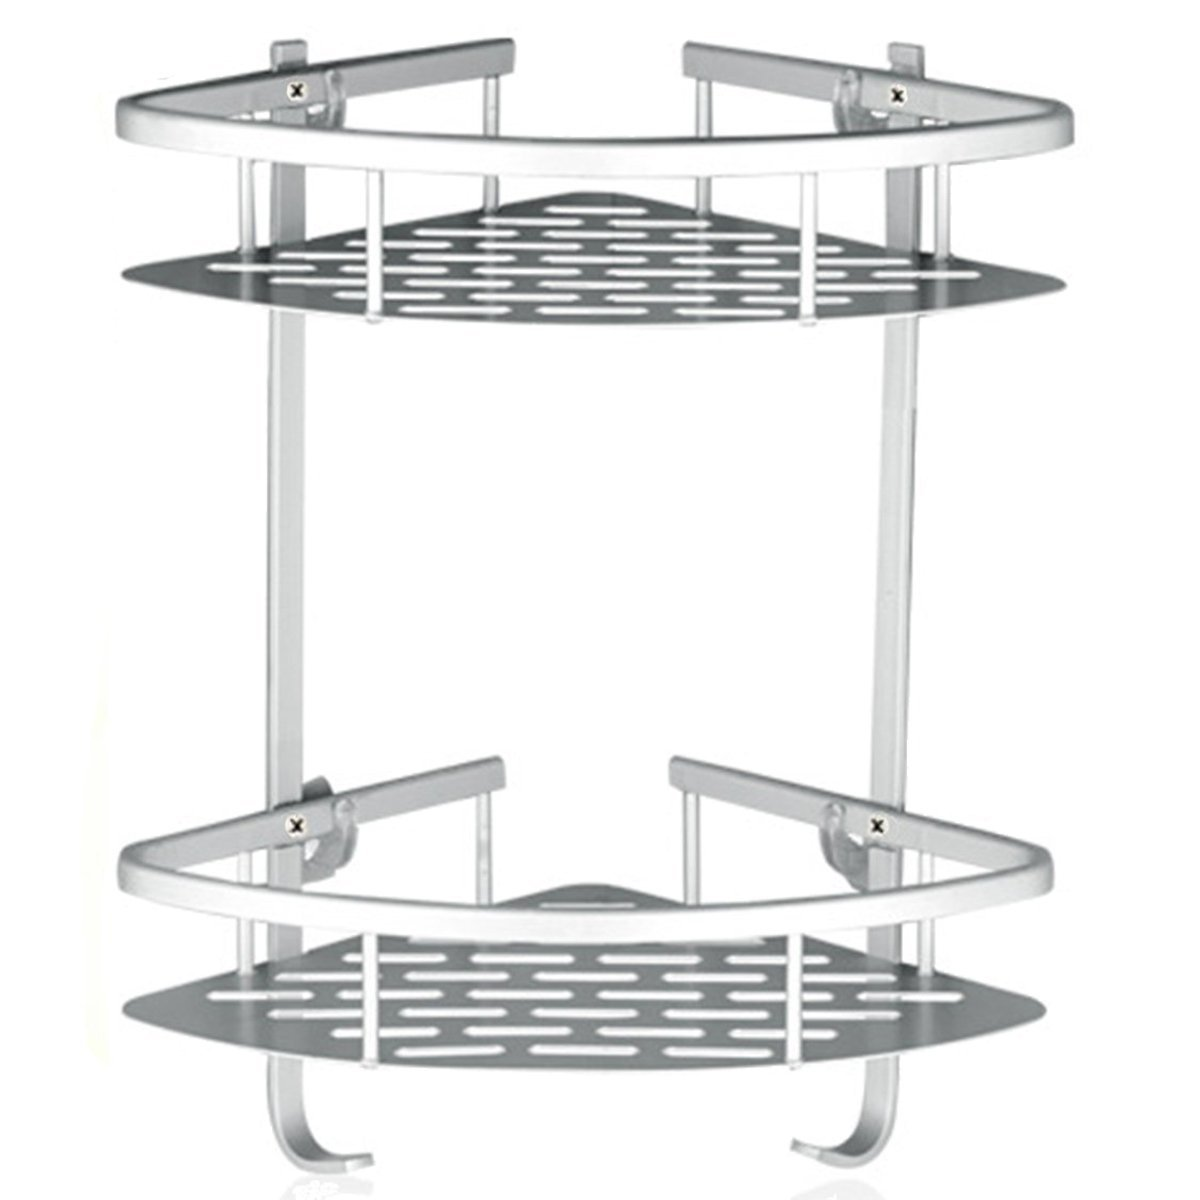 Fencher Bathroom Shelf ( No Drilling ) Durable Aluminum 2 tiers shower storage Towel Bar basket kitchen cornor sticky No Drills Shelves Fencher Co. Ltd Lancher Bathroom shower Shelf